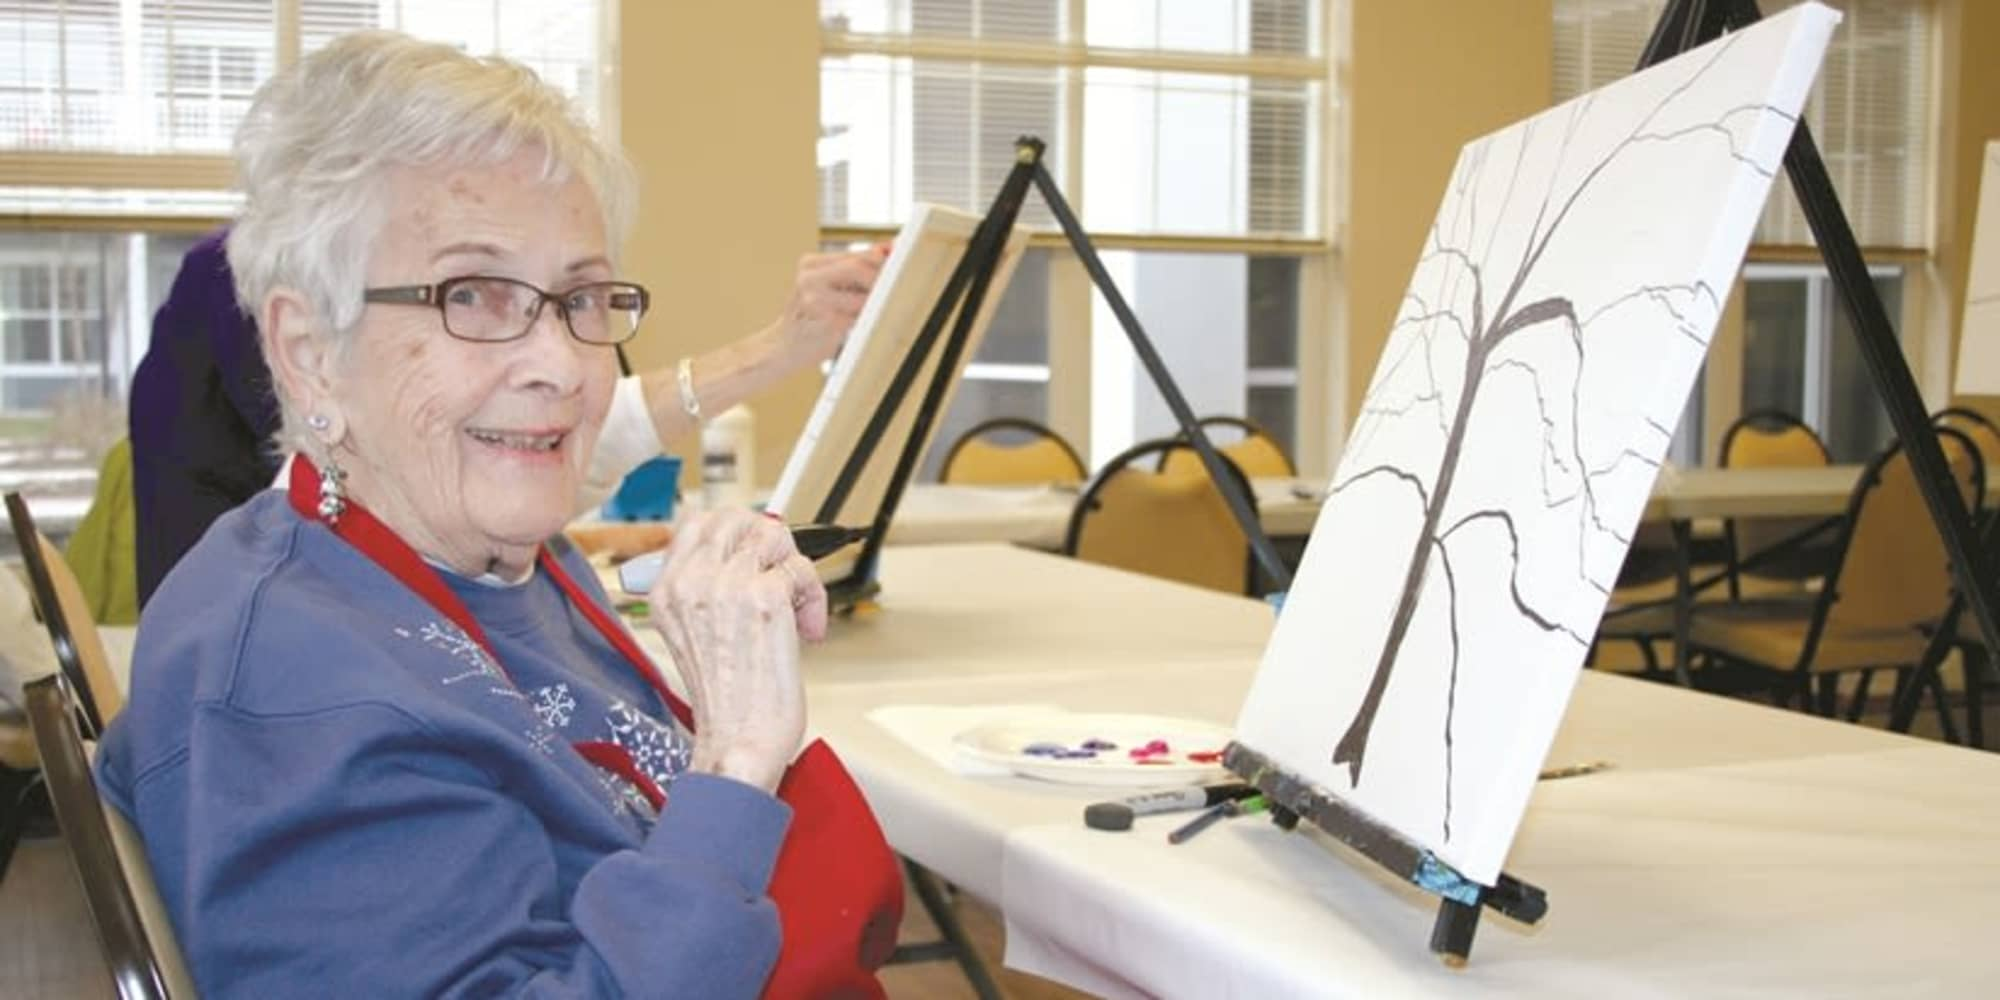 A resident from Fairview Estates Gracious Retirement Living in Hopkinton, Massachusetts painting a tree